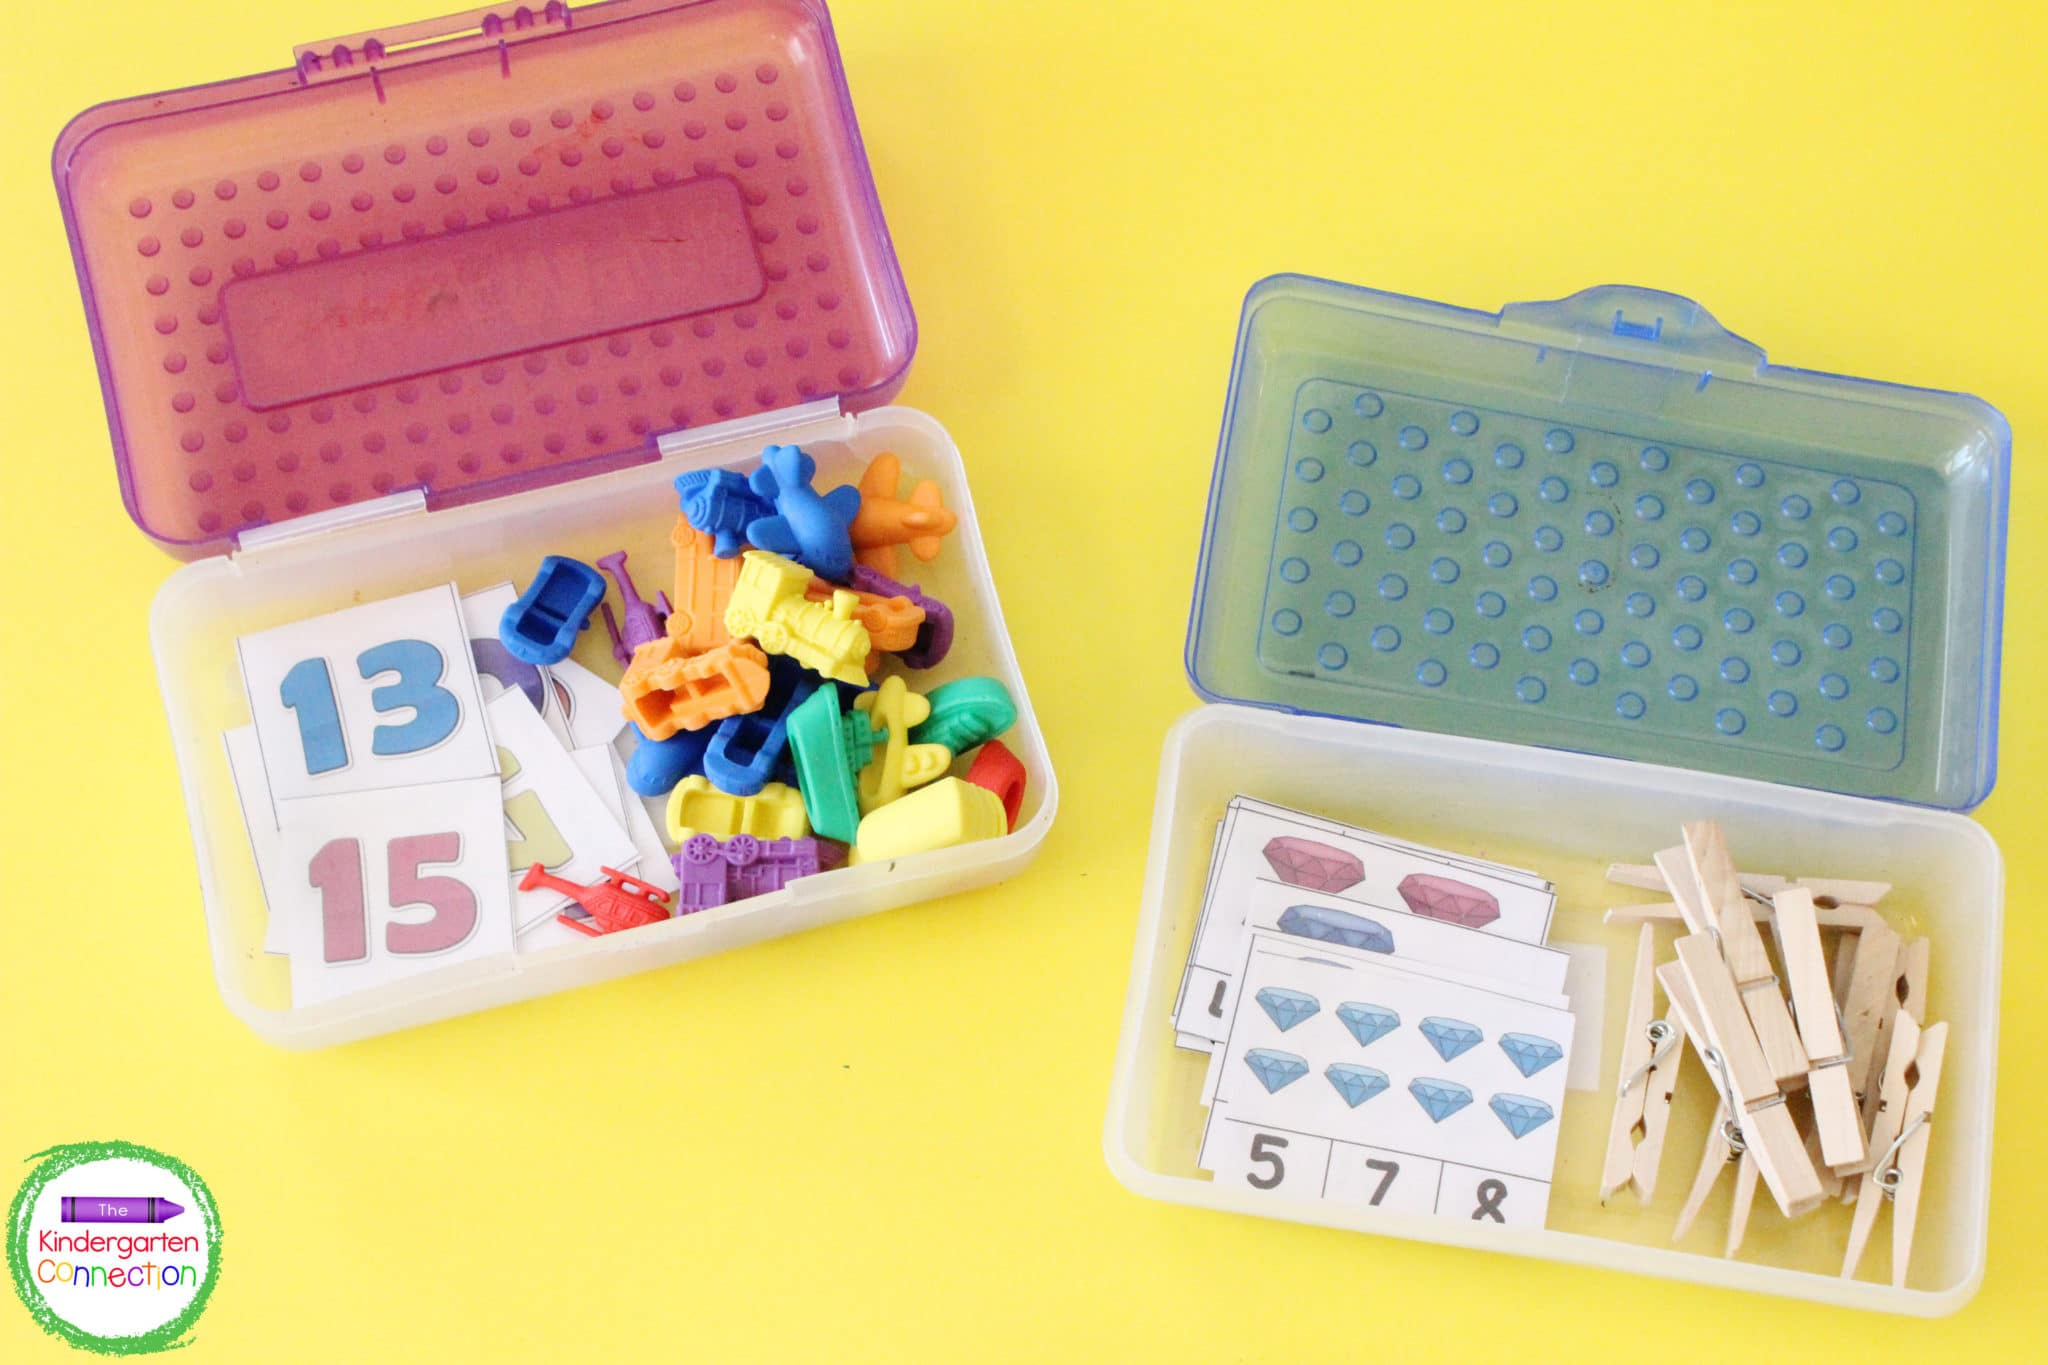 School supply boxes are perfect for storing a simple center activity and the manipulatives needed.